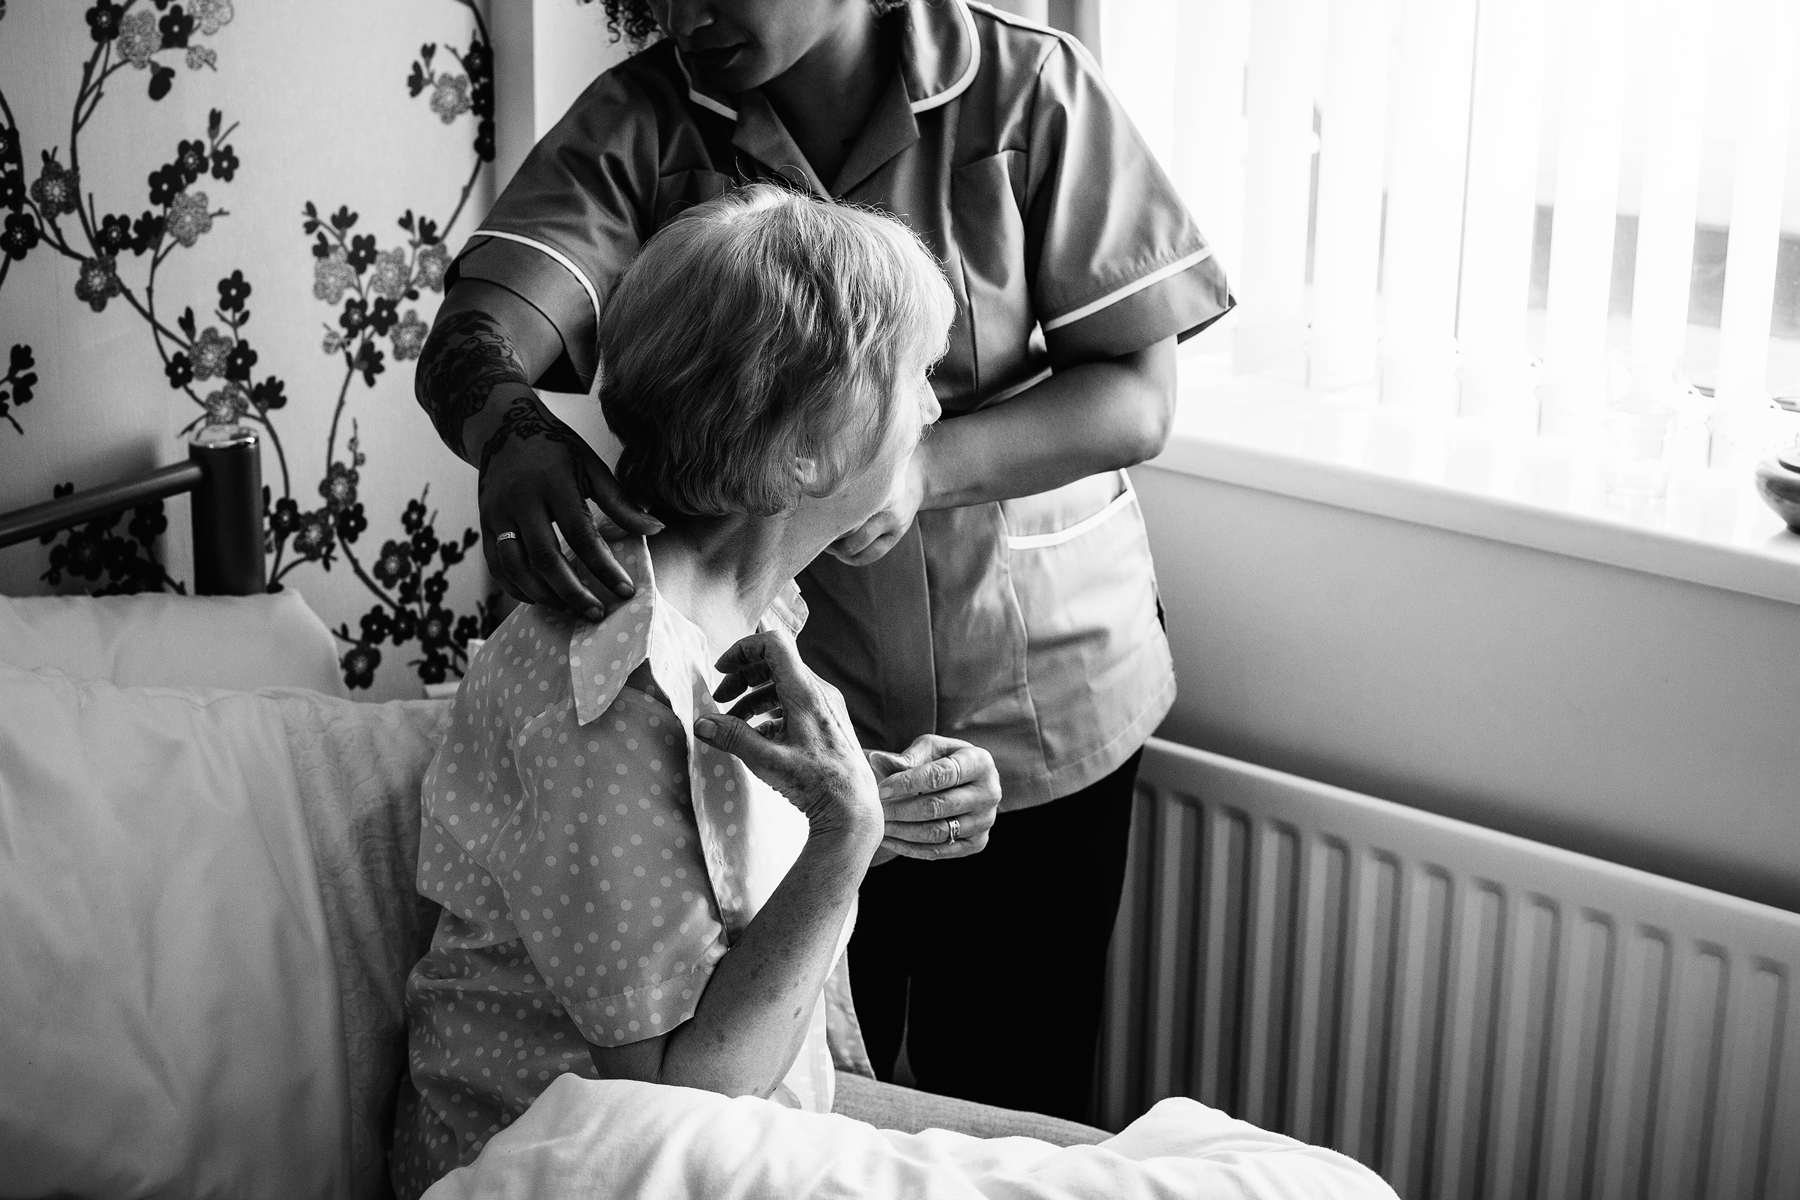 A home caregiver helps a senior woman get dressed in her bedroom.